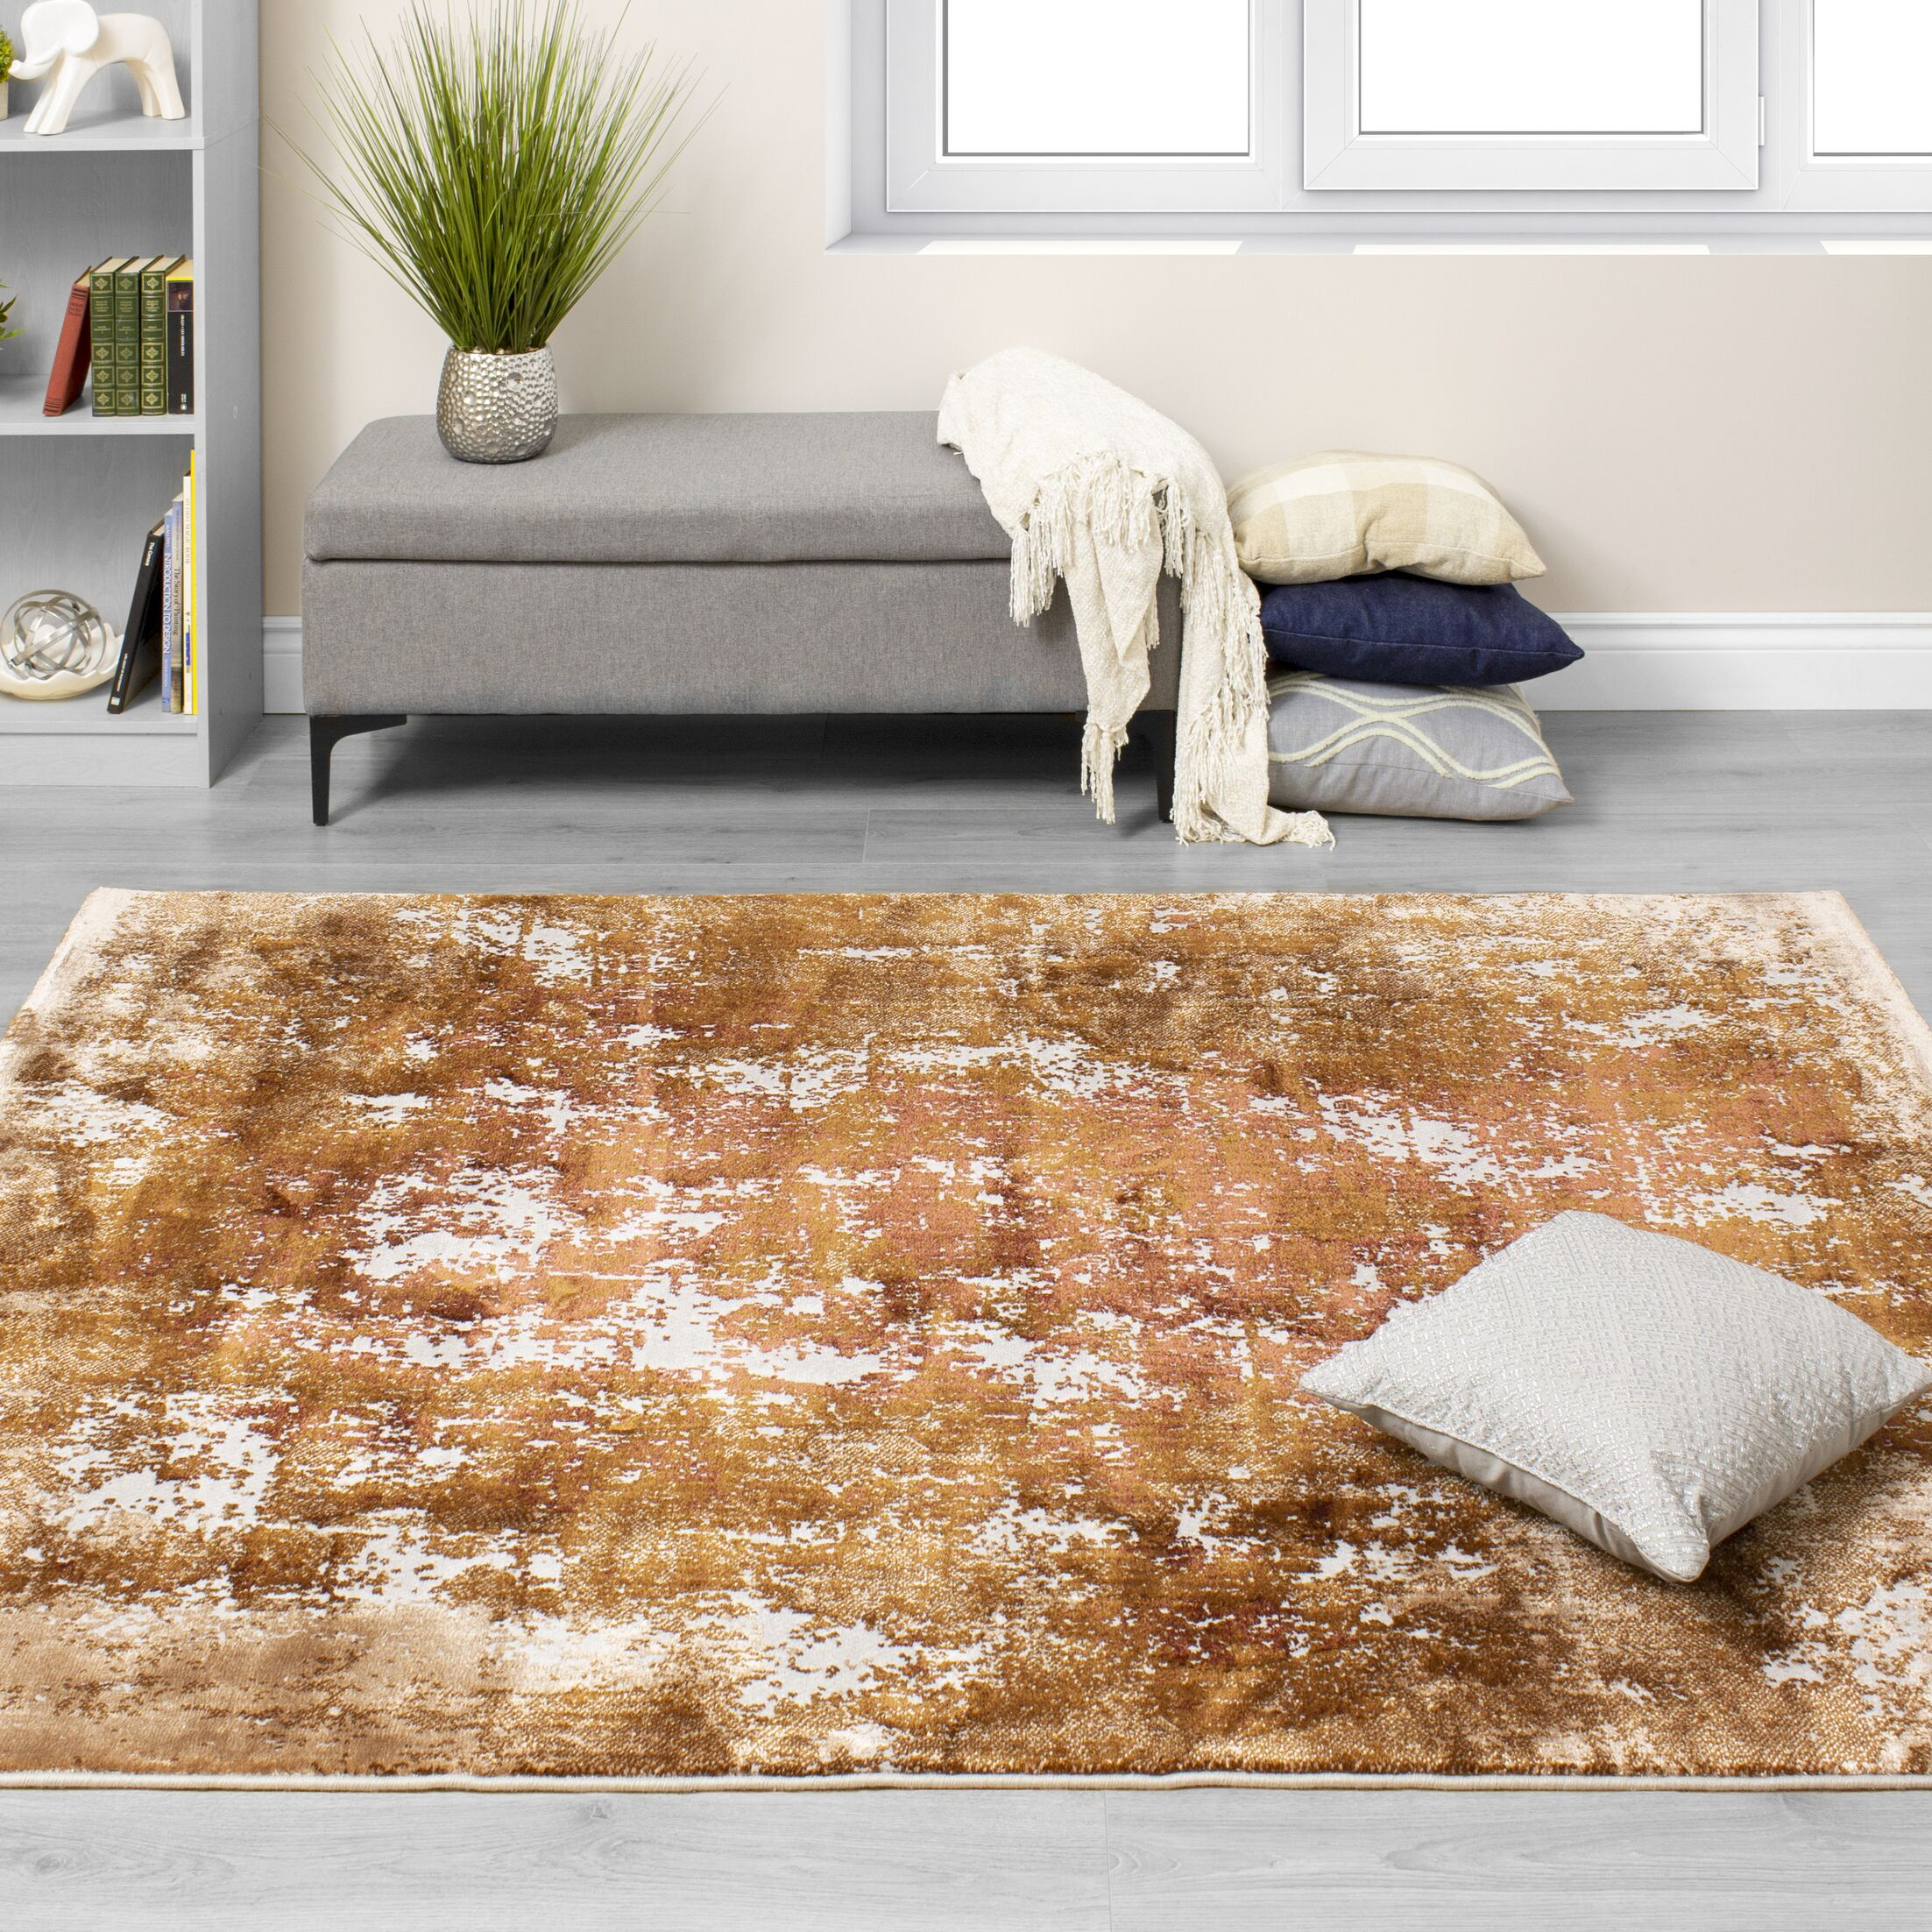 Finnick Distressed Abstract Orange/Cream Area Rug Rug Size: Rectangle 7'10'' x 10'10''